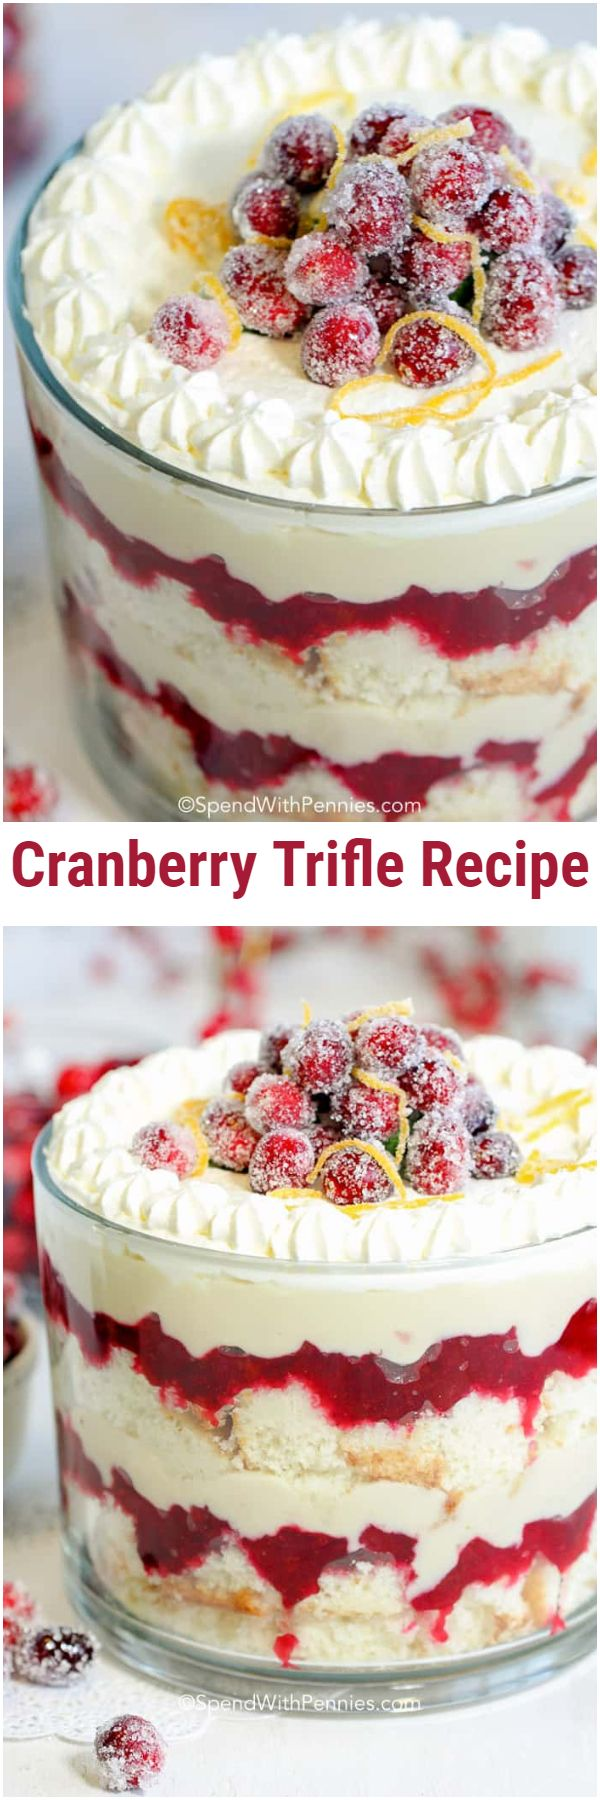 Cranberry Trifle Recipe